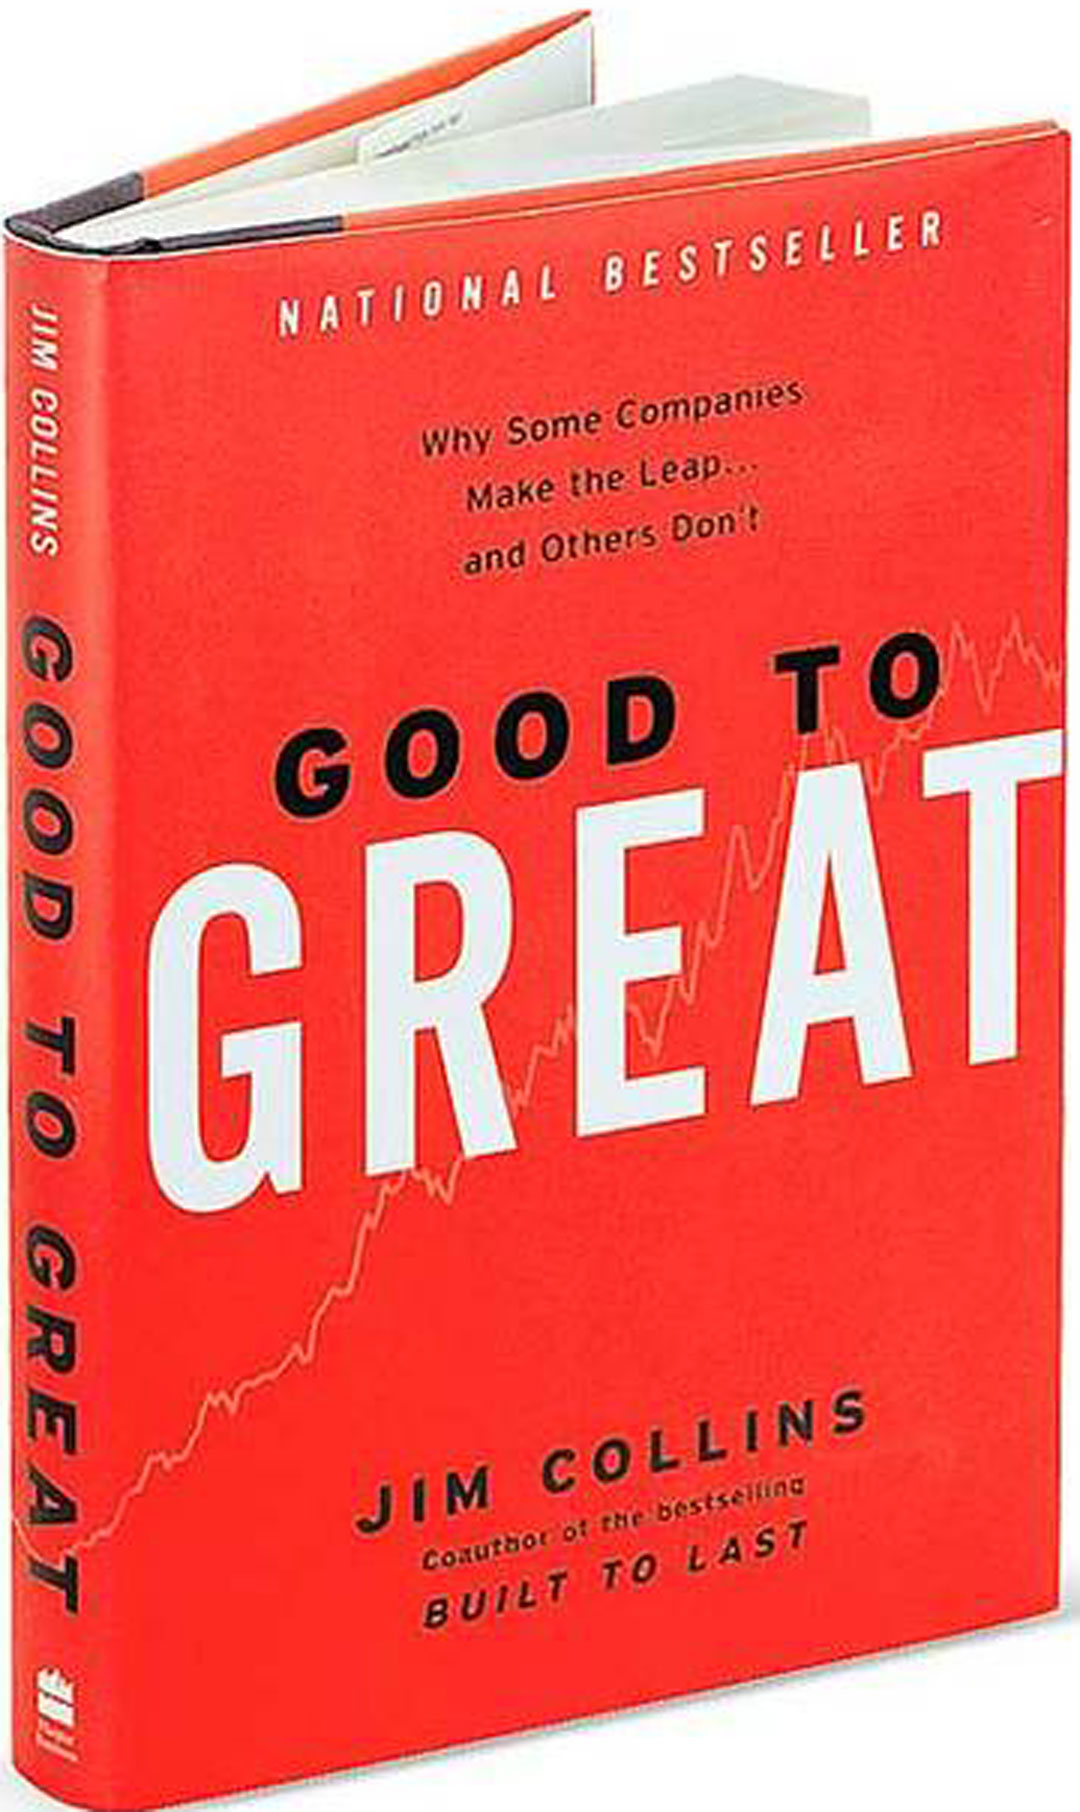 Good to Great: Why Some Companies<br /> Make the Leap... and Others Don't